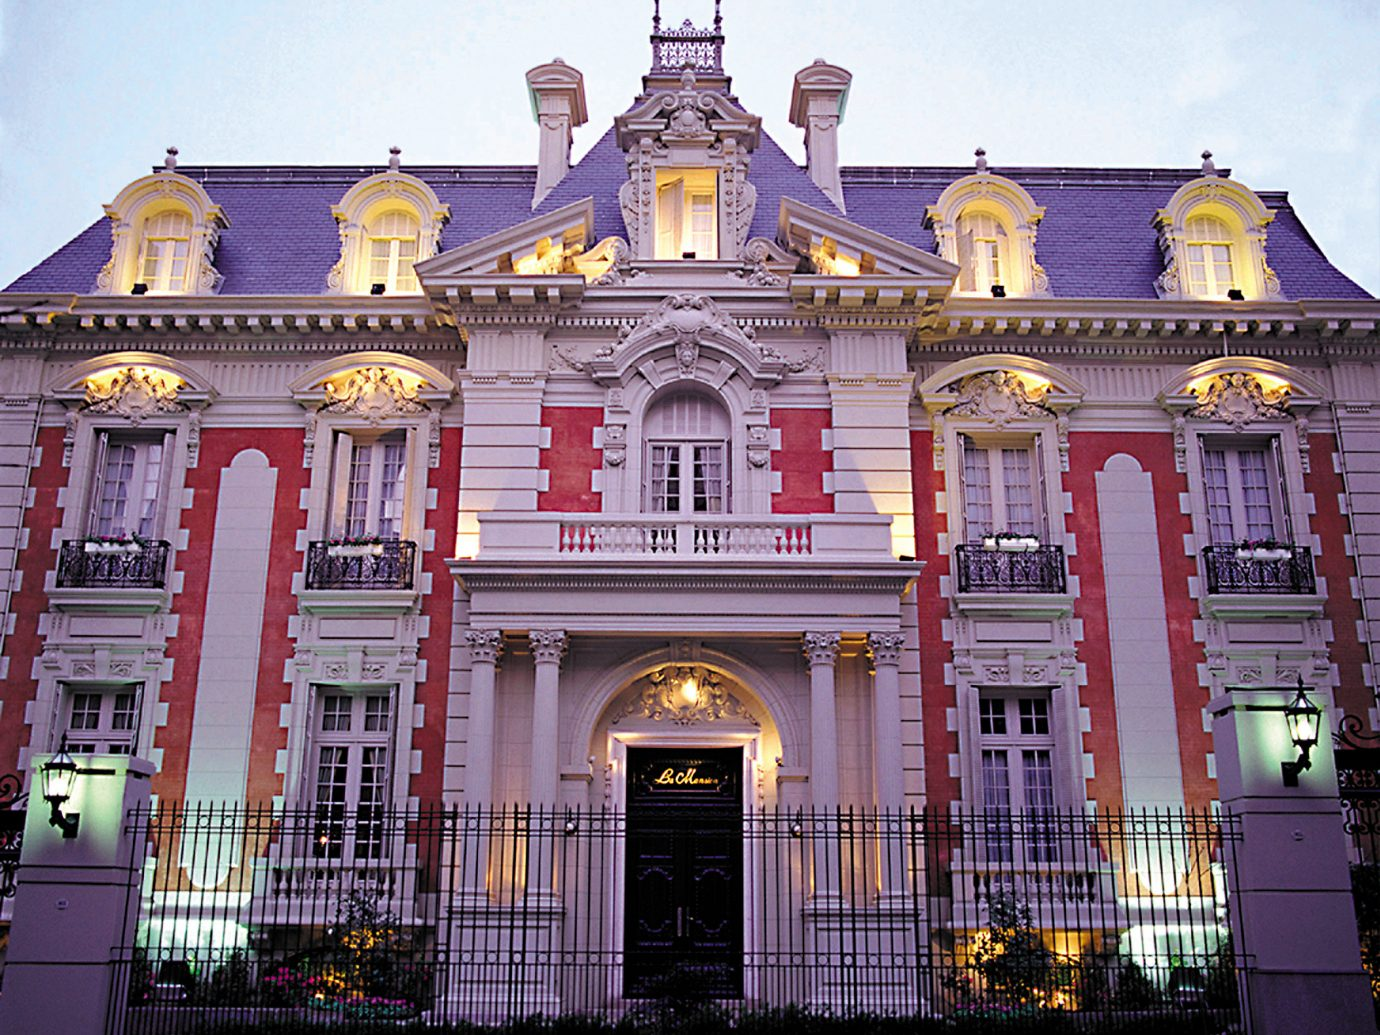 Architecture Buildings Elegant Exterior Hotels Romance building outdoor landmark house facade palace place of worship synagogue government building